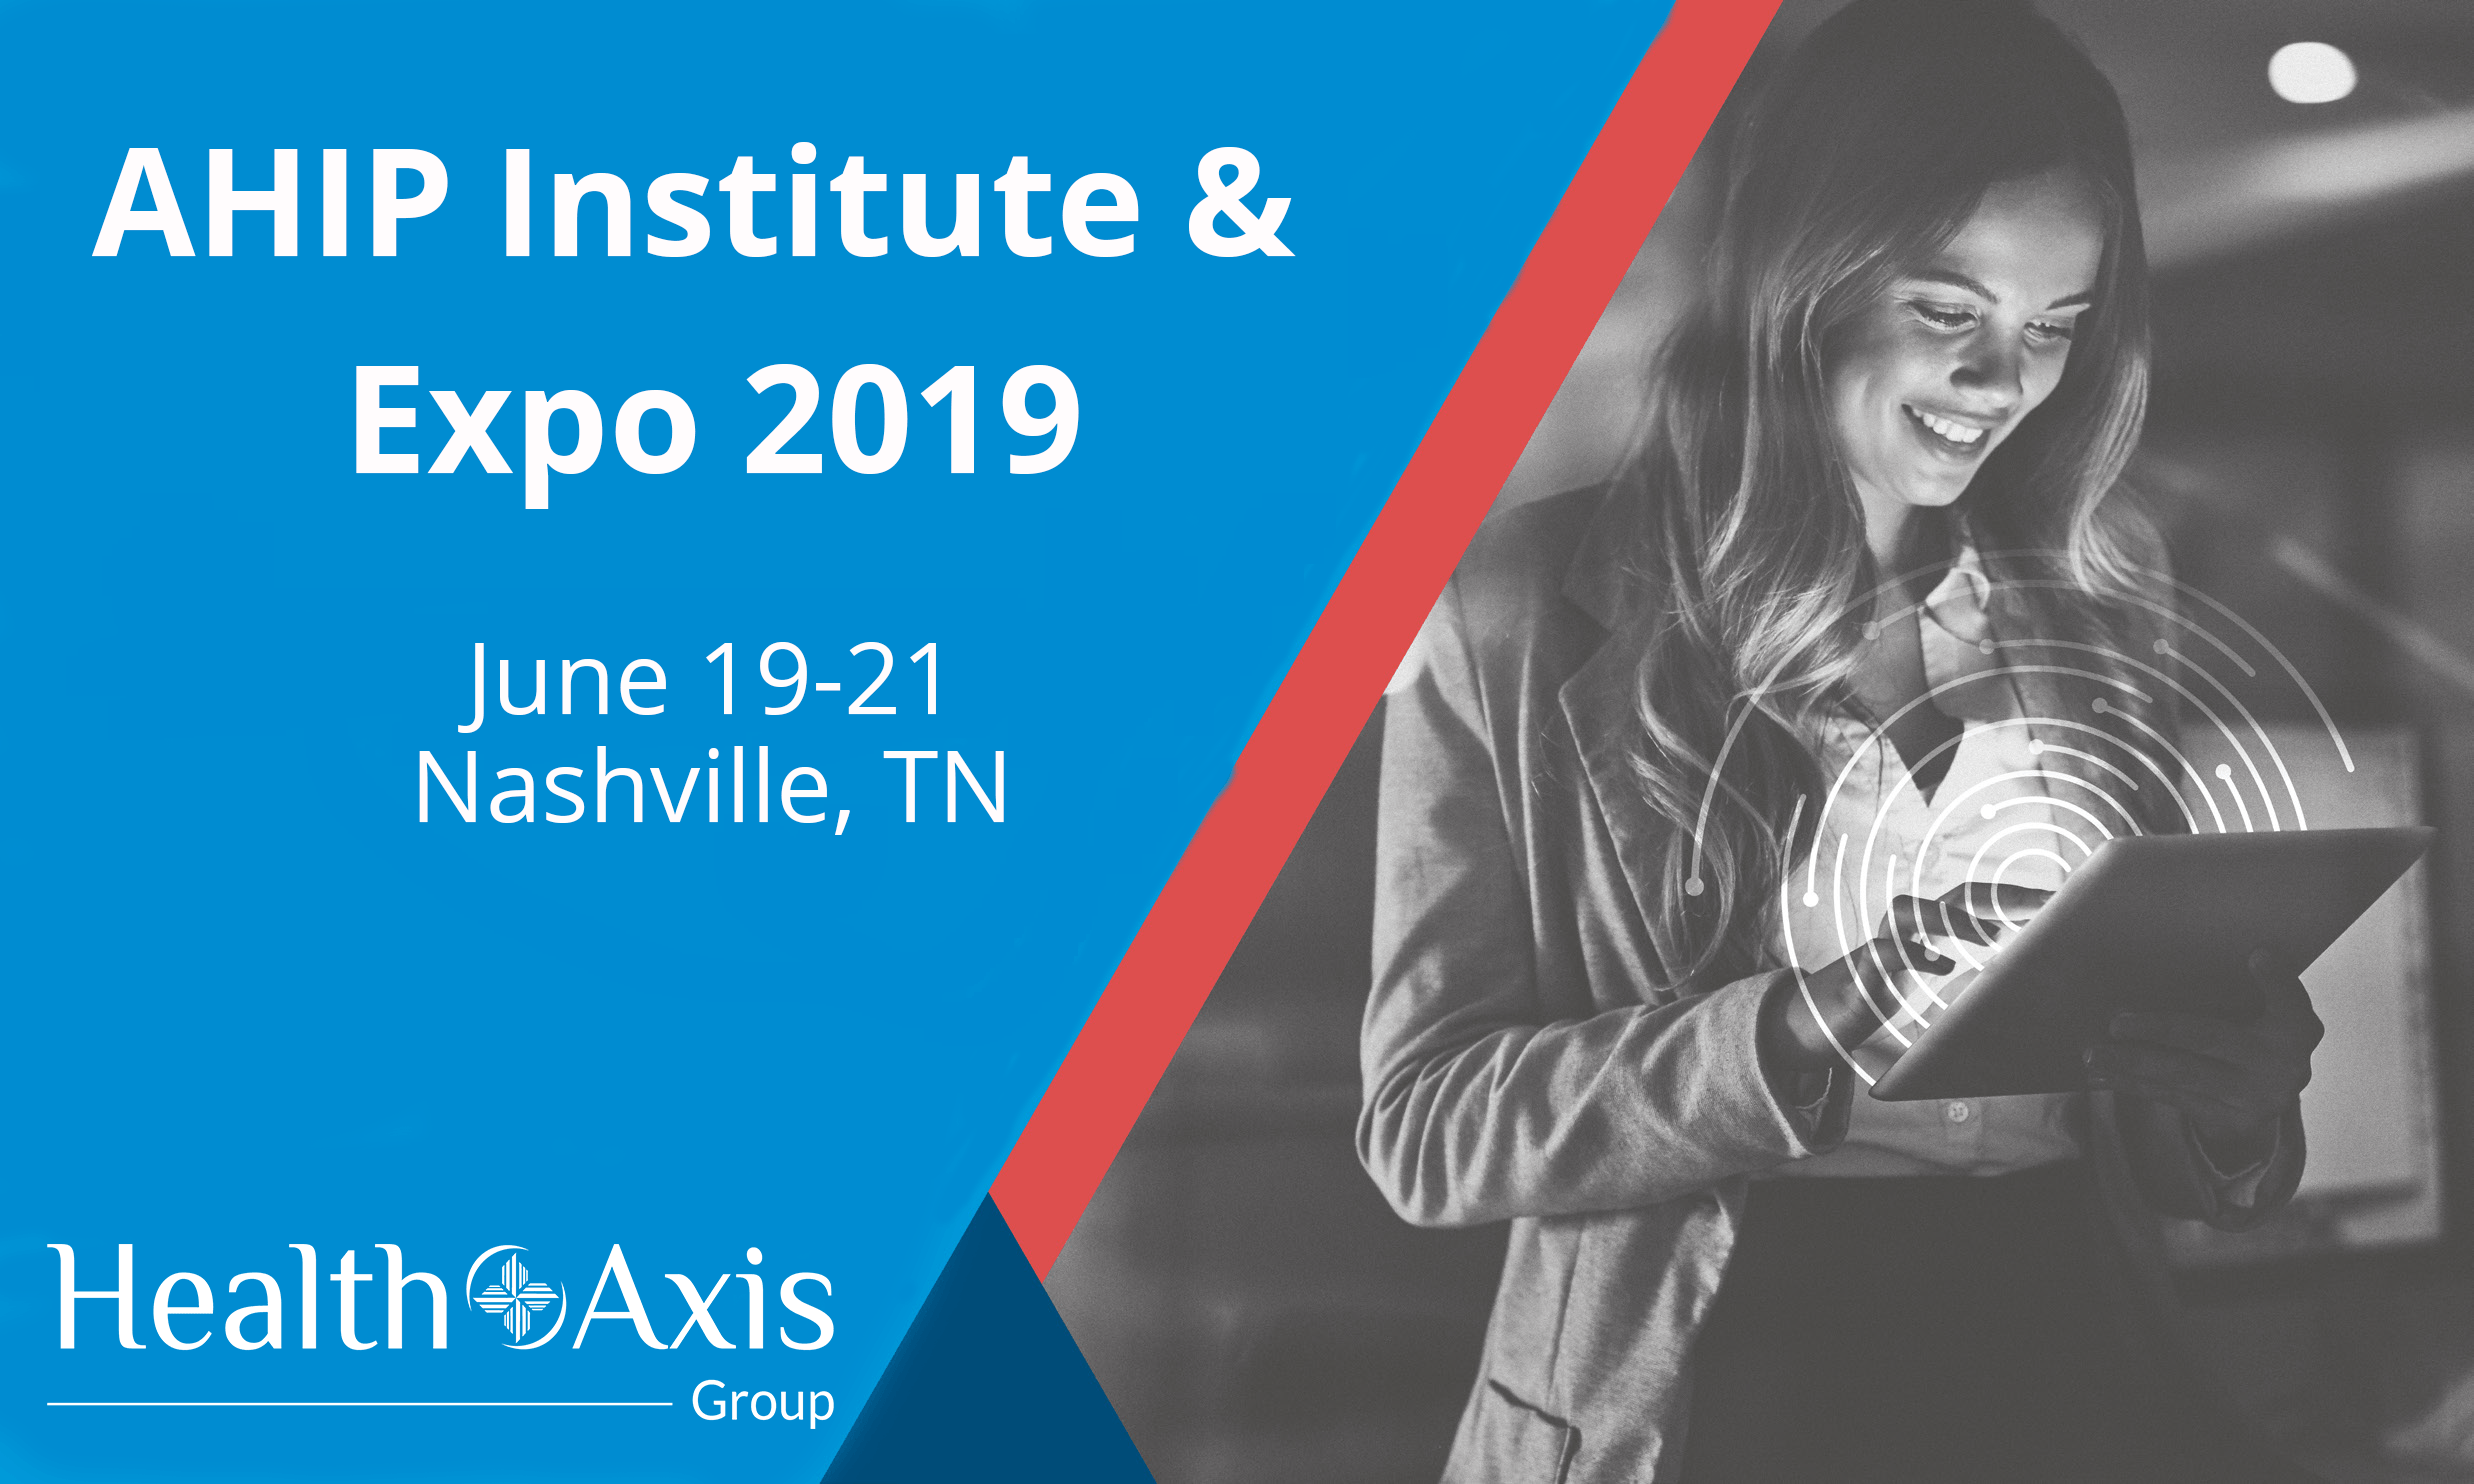 HealthAxis Group To Exhibit At AHIP Institute